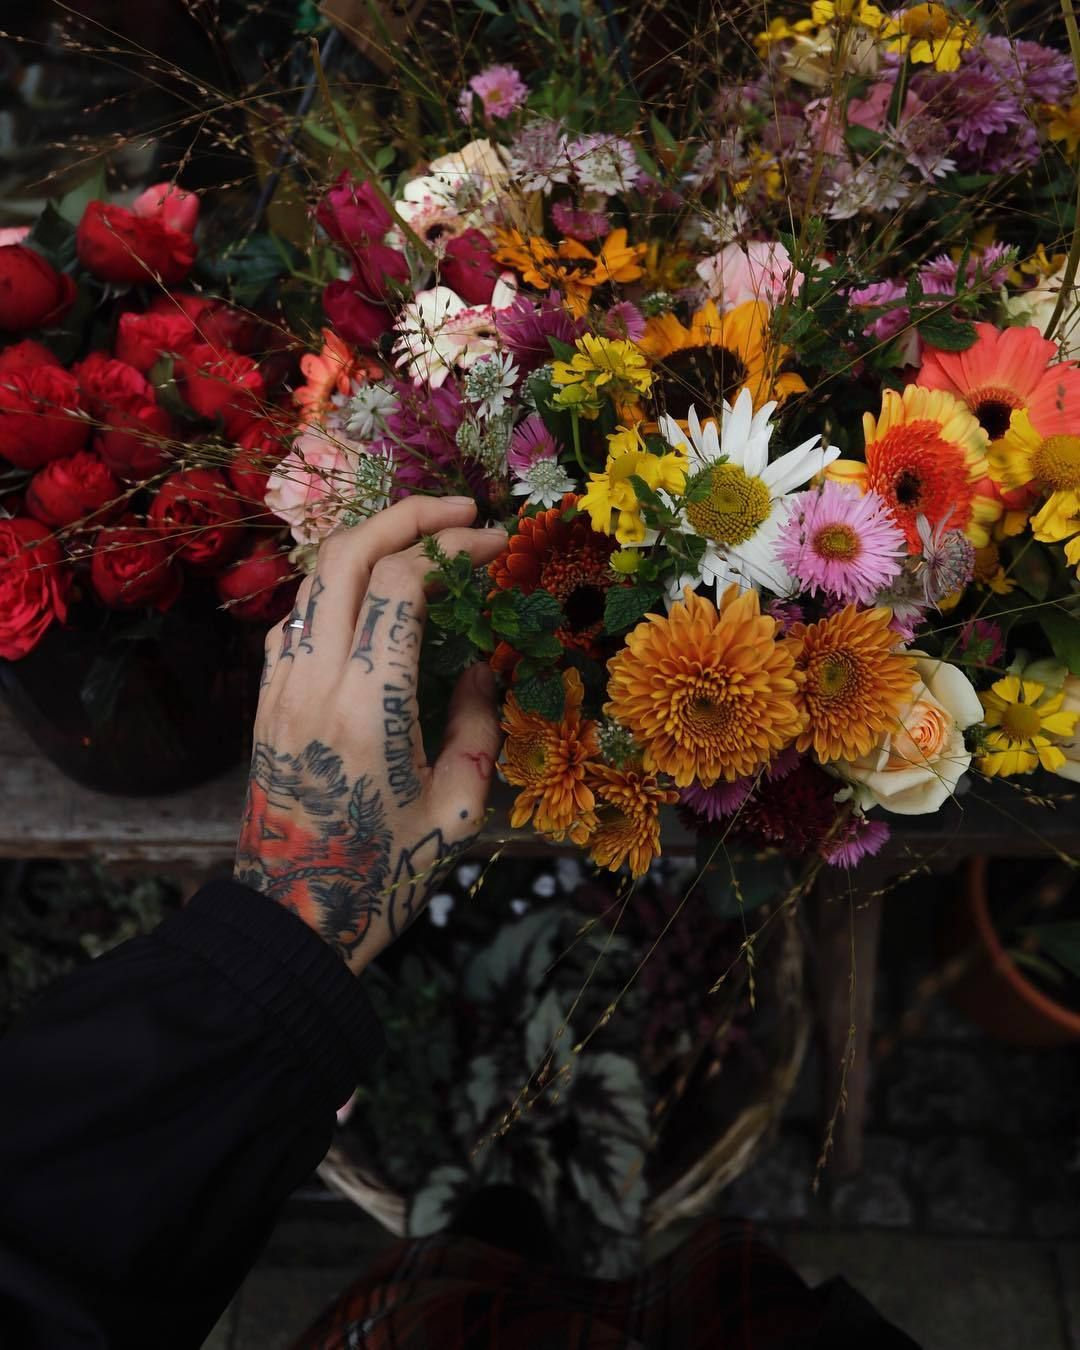 Pin By Catherine Ames On It S Me Flower Aesthetic Flowers Aesthetic